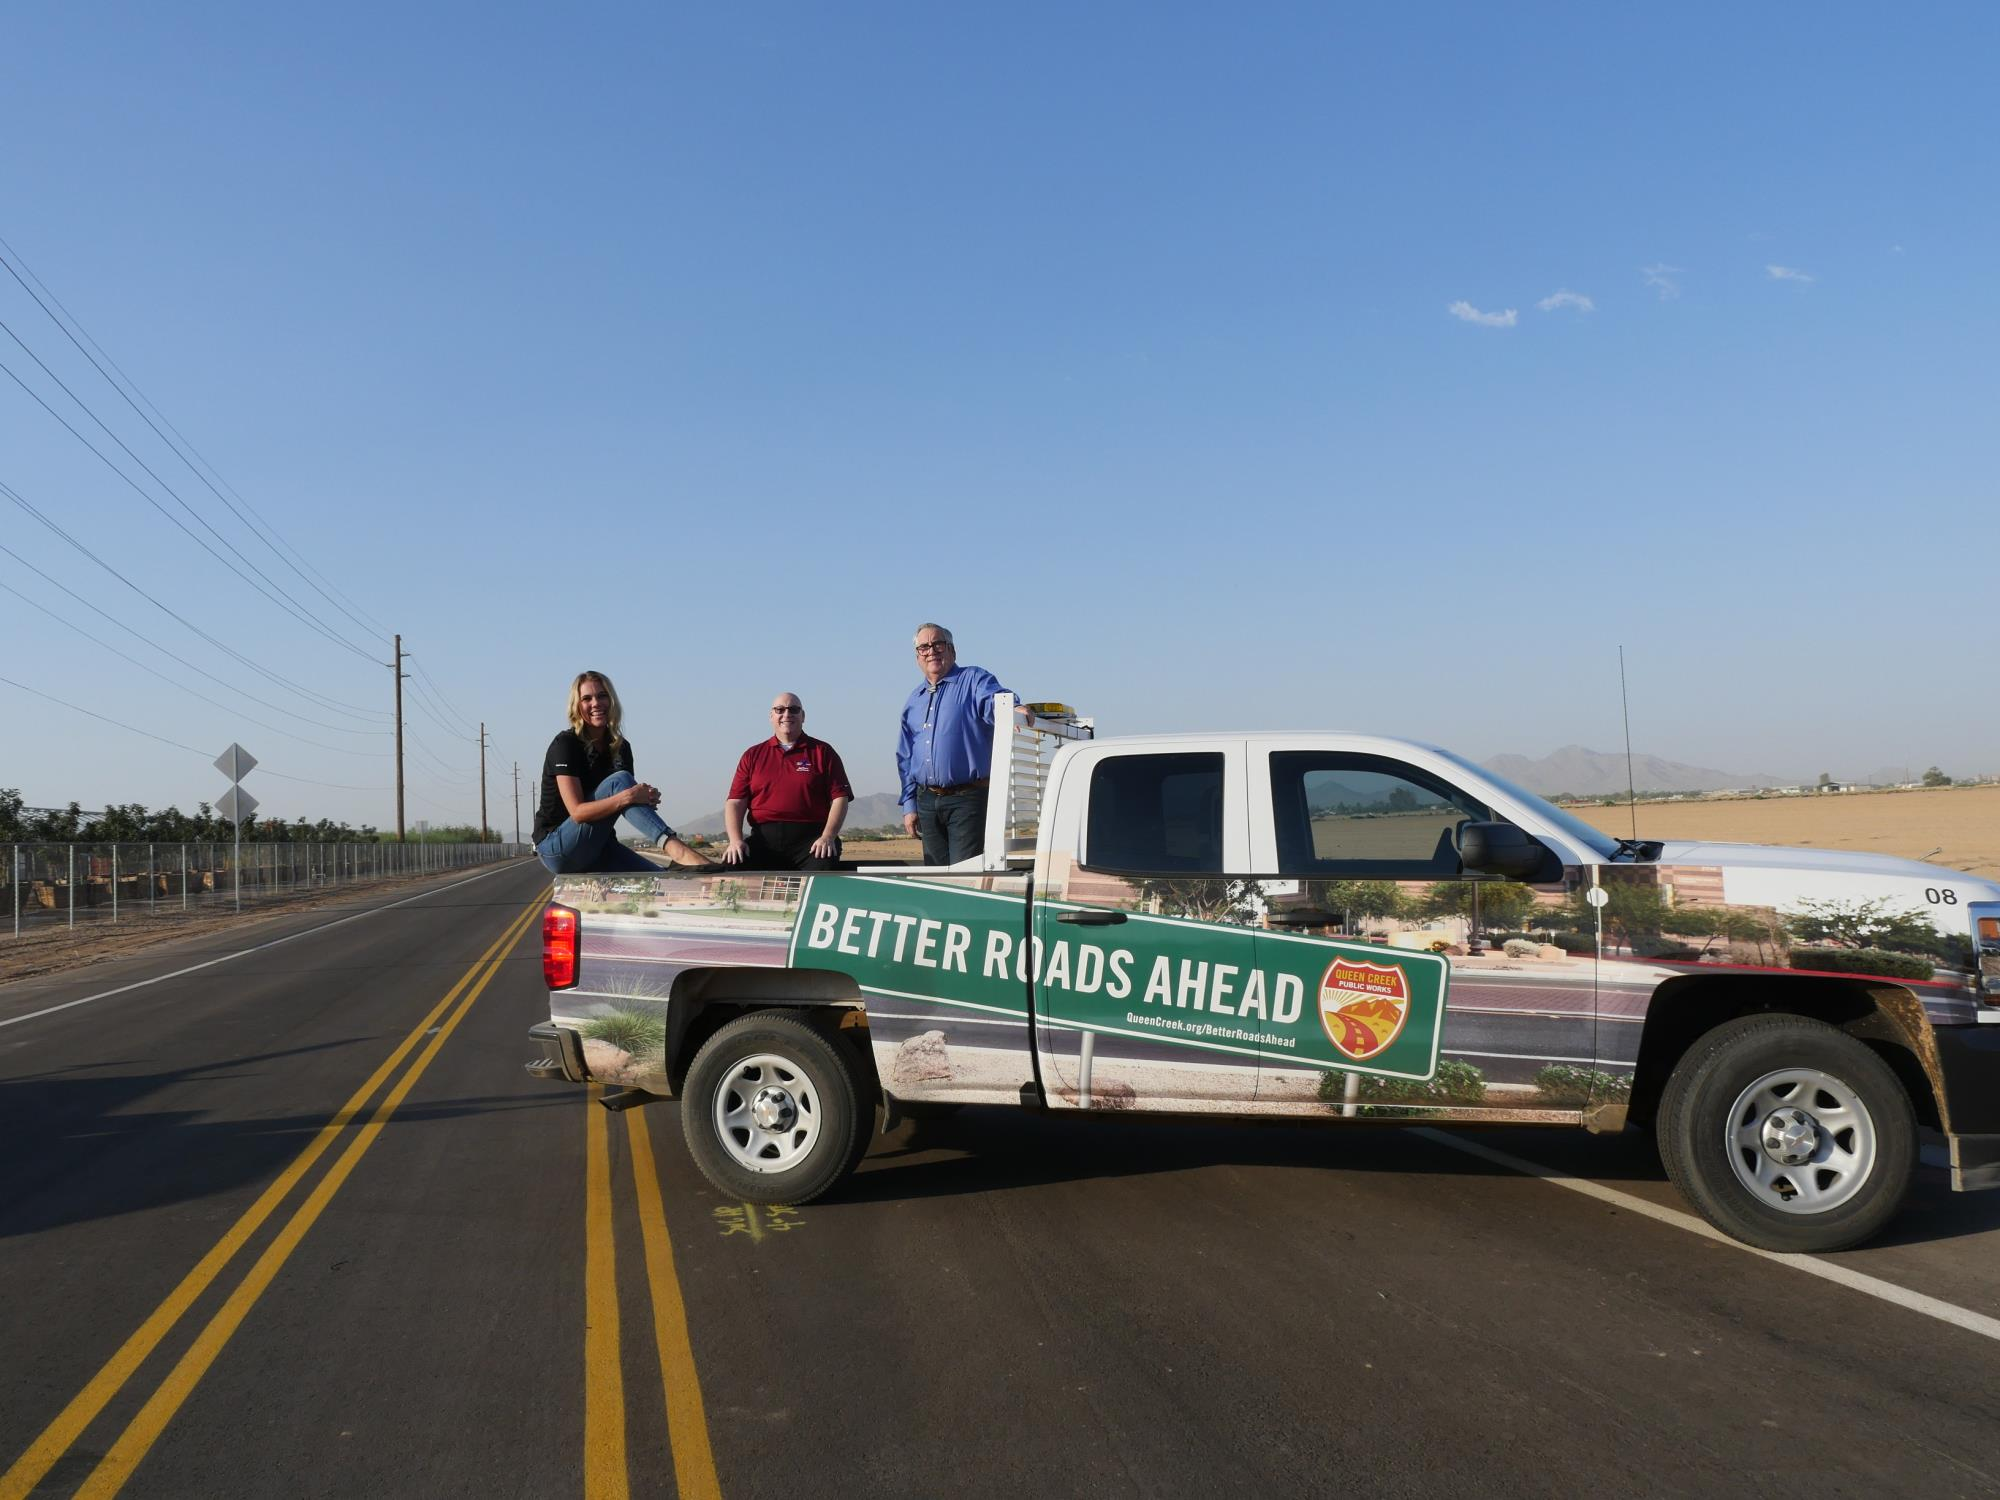 Mayor Barney and Council Members Brown and Wheatley in the Better Roads Ahead Truck at the Crismon Road Ribbon Cutting on August 7